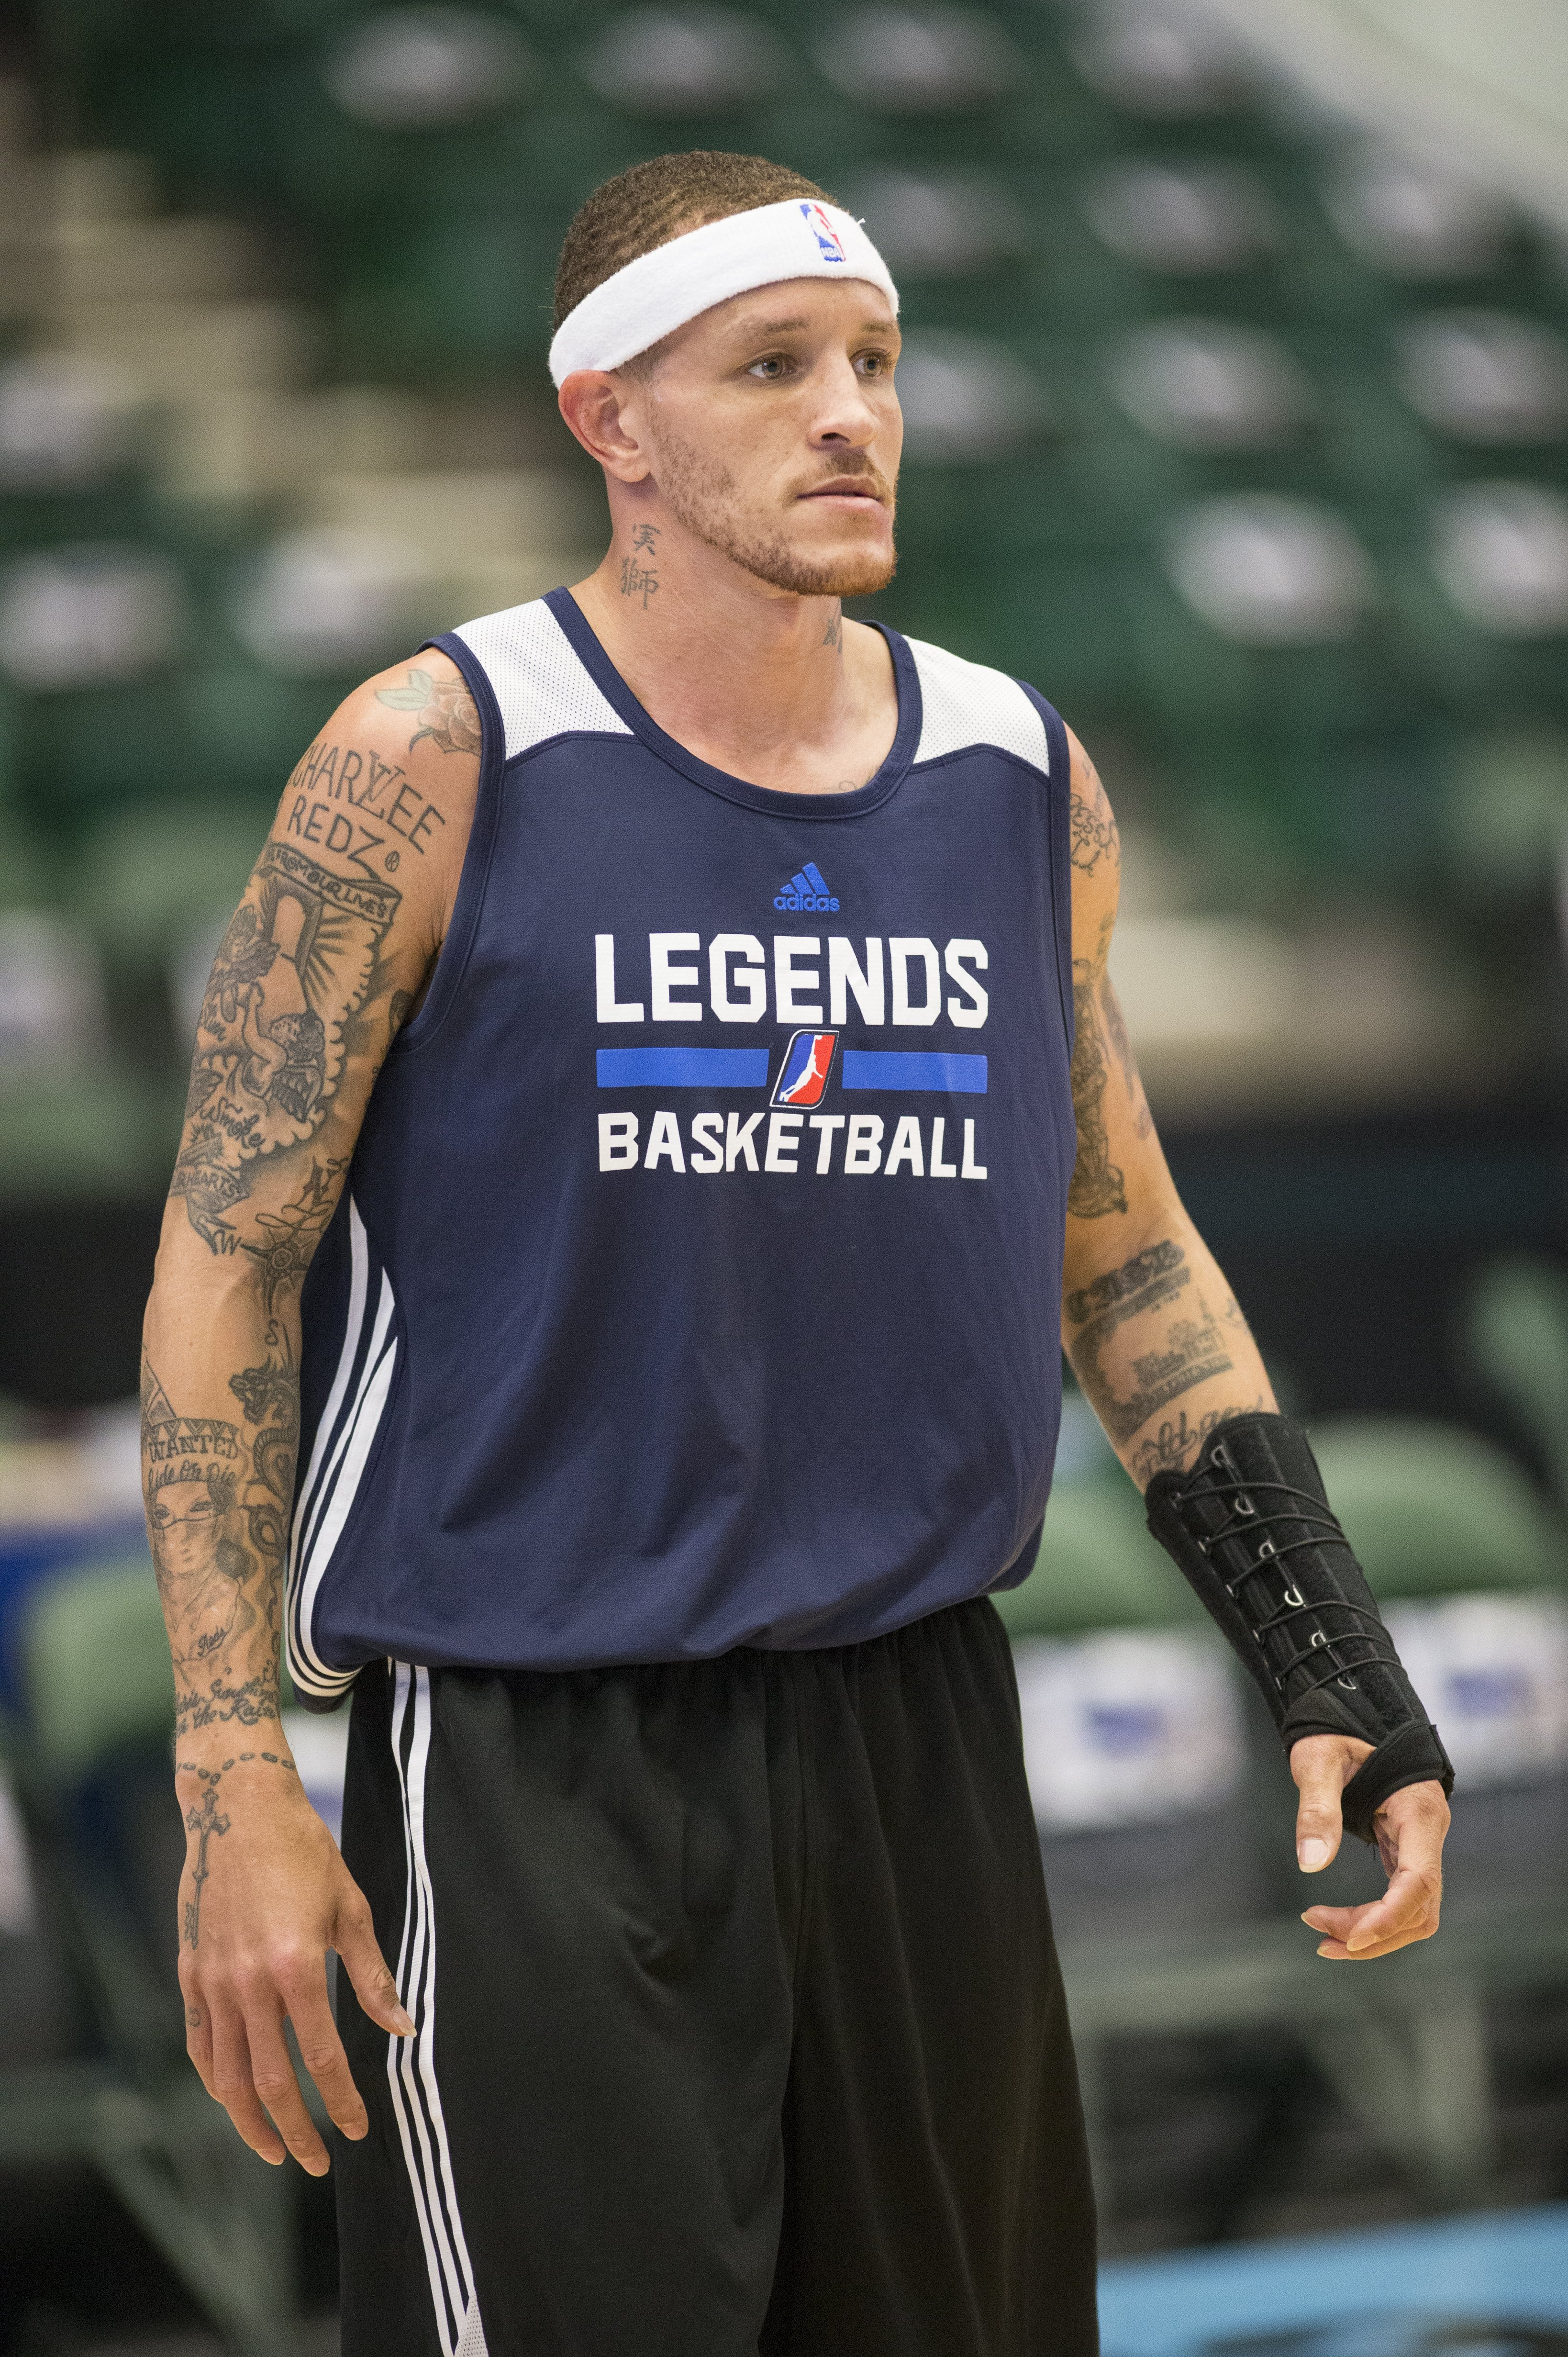 Delonte West on the court during a solo pre-game workout at the Dr. Pepper Arena on April 1, 2015, in Frisco, Texas | Photo:Michael Mulvey for The Washington Post/Getty Images